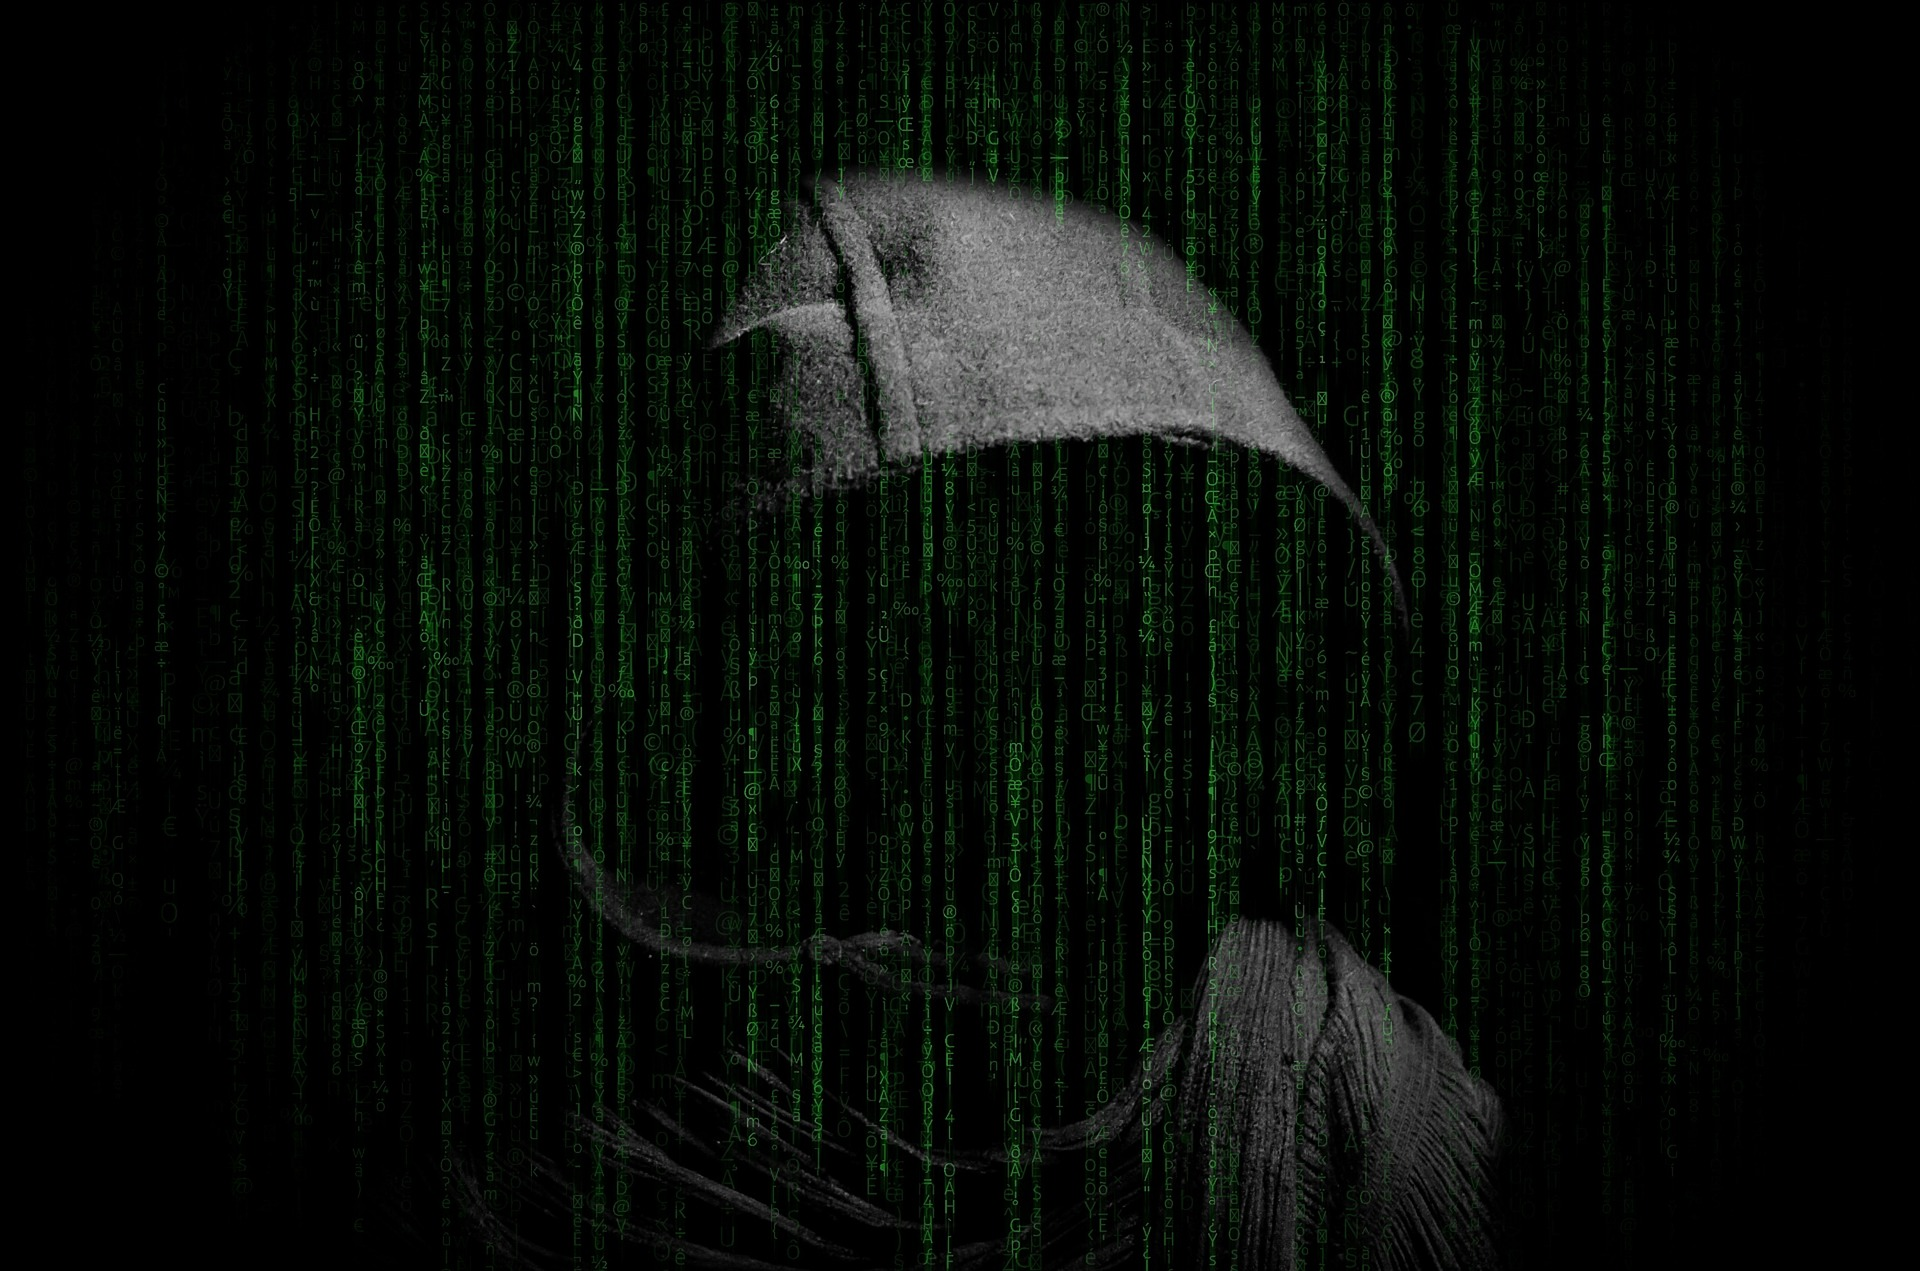 Cybercrime - Easier Than Ever to Be Accused?